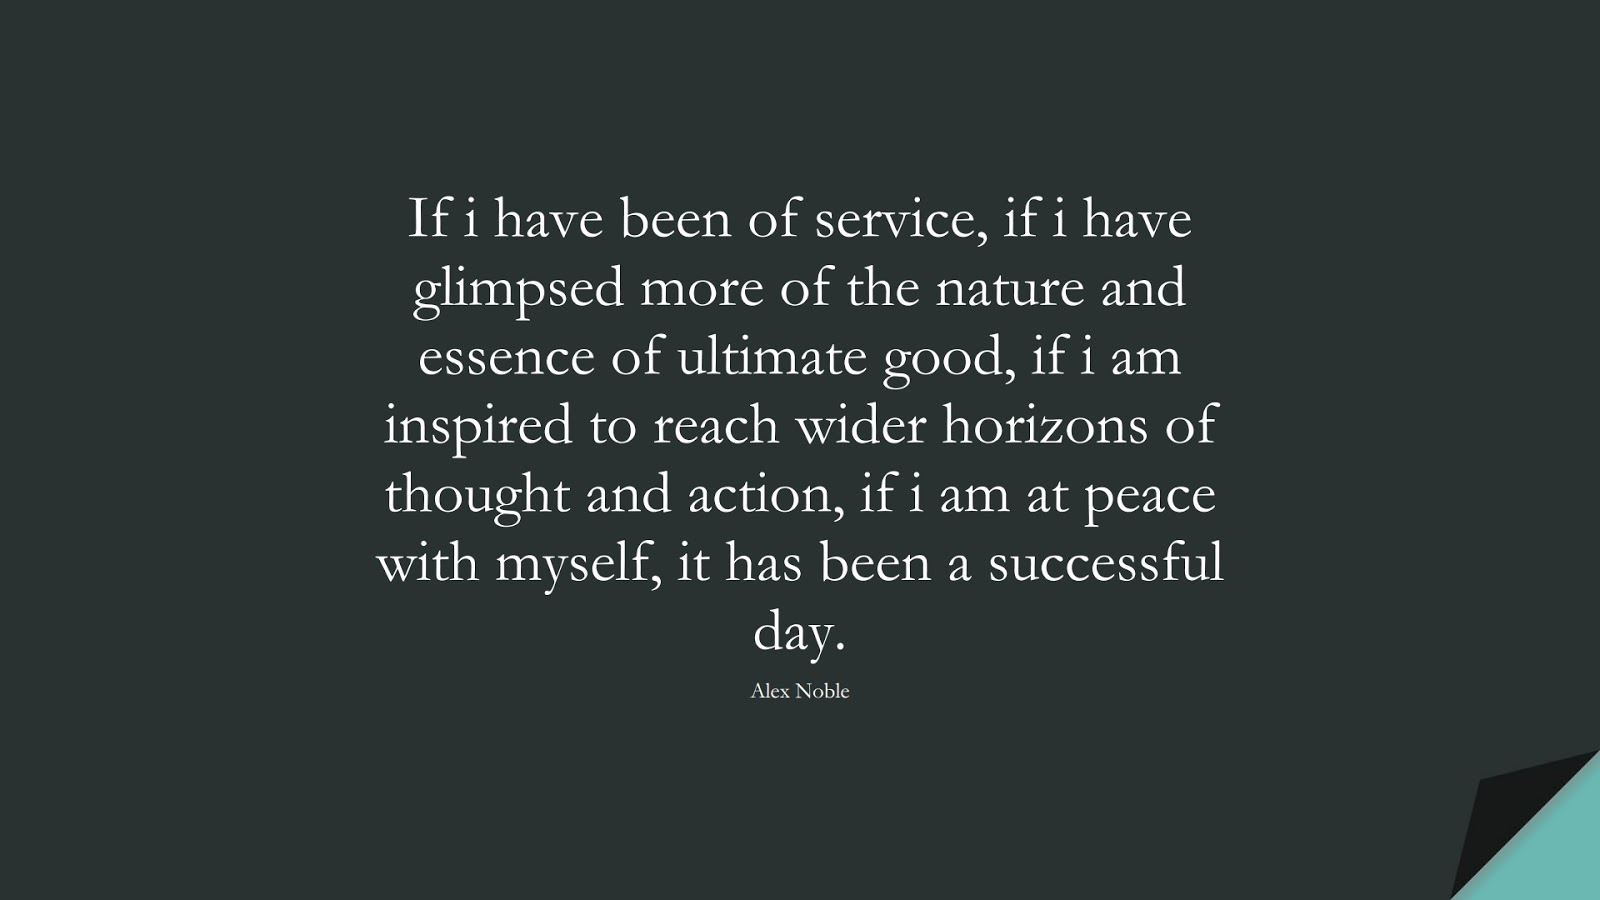 If i have been of service, if i have glimpsed more of the nature and essence of ultimate good, if i am inspired to reach wider horizons of thought and action, if i am at peace with myself, it has been a successful day. (Alex Noble);  #SuccessQuotes